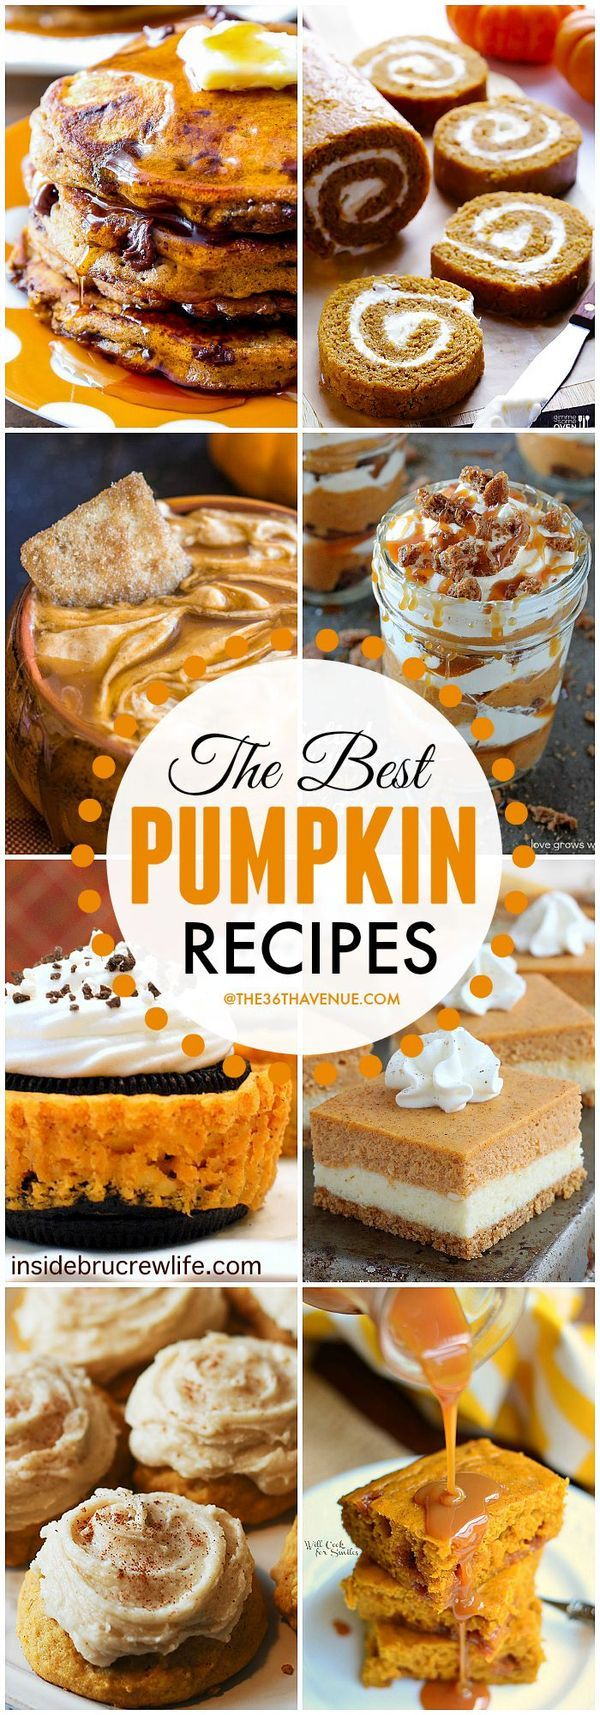 Recipes - Best Pumpkin Recipes at the36thavenue.com These are super good! desserts, baked goods, fall recipes,